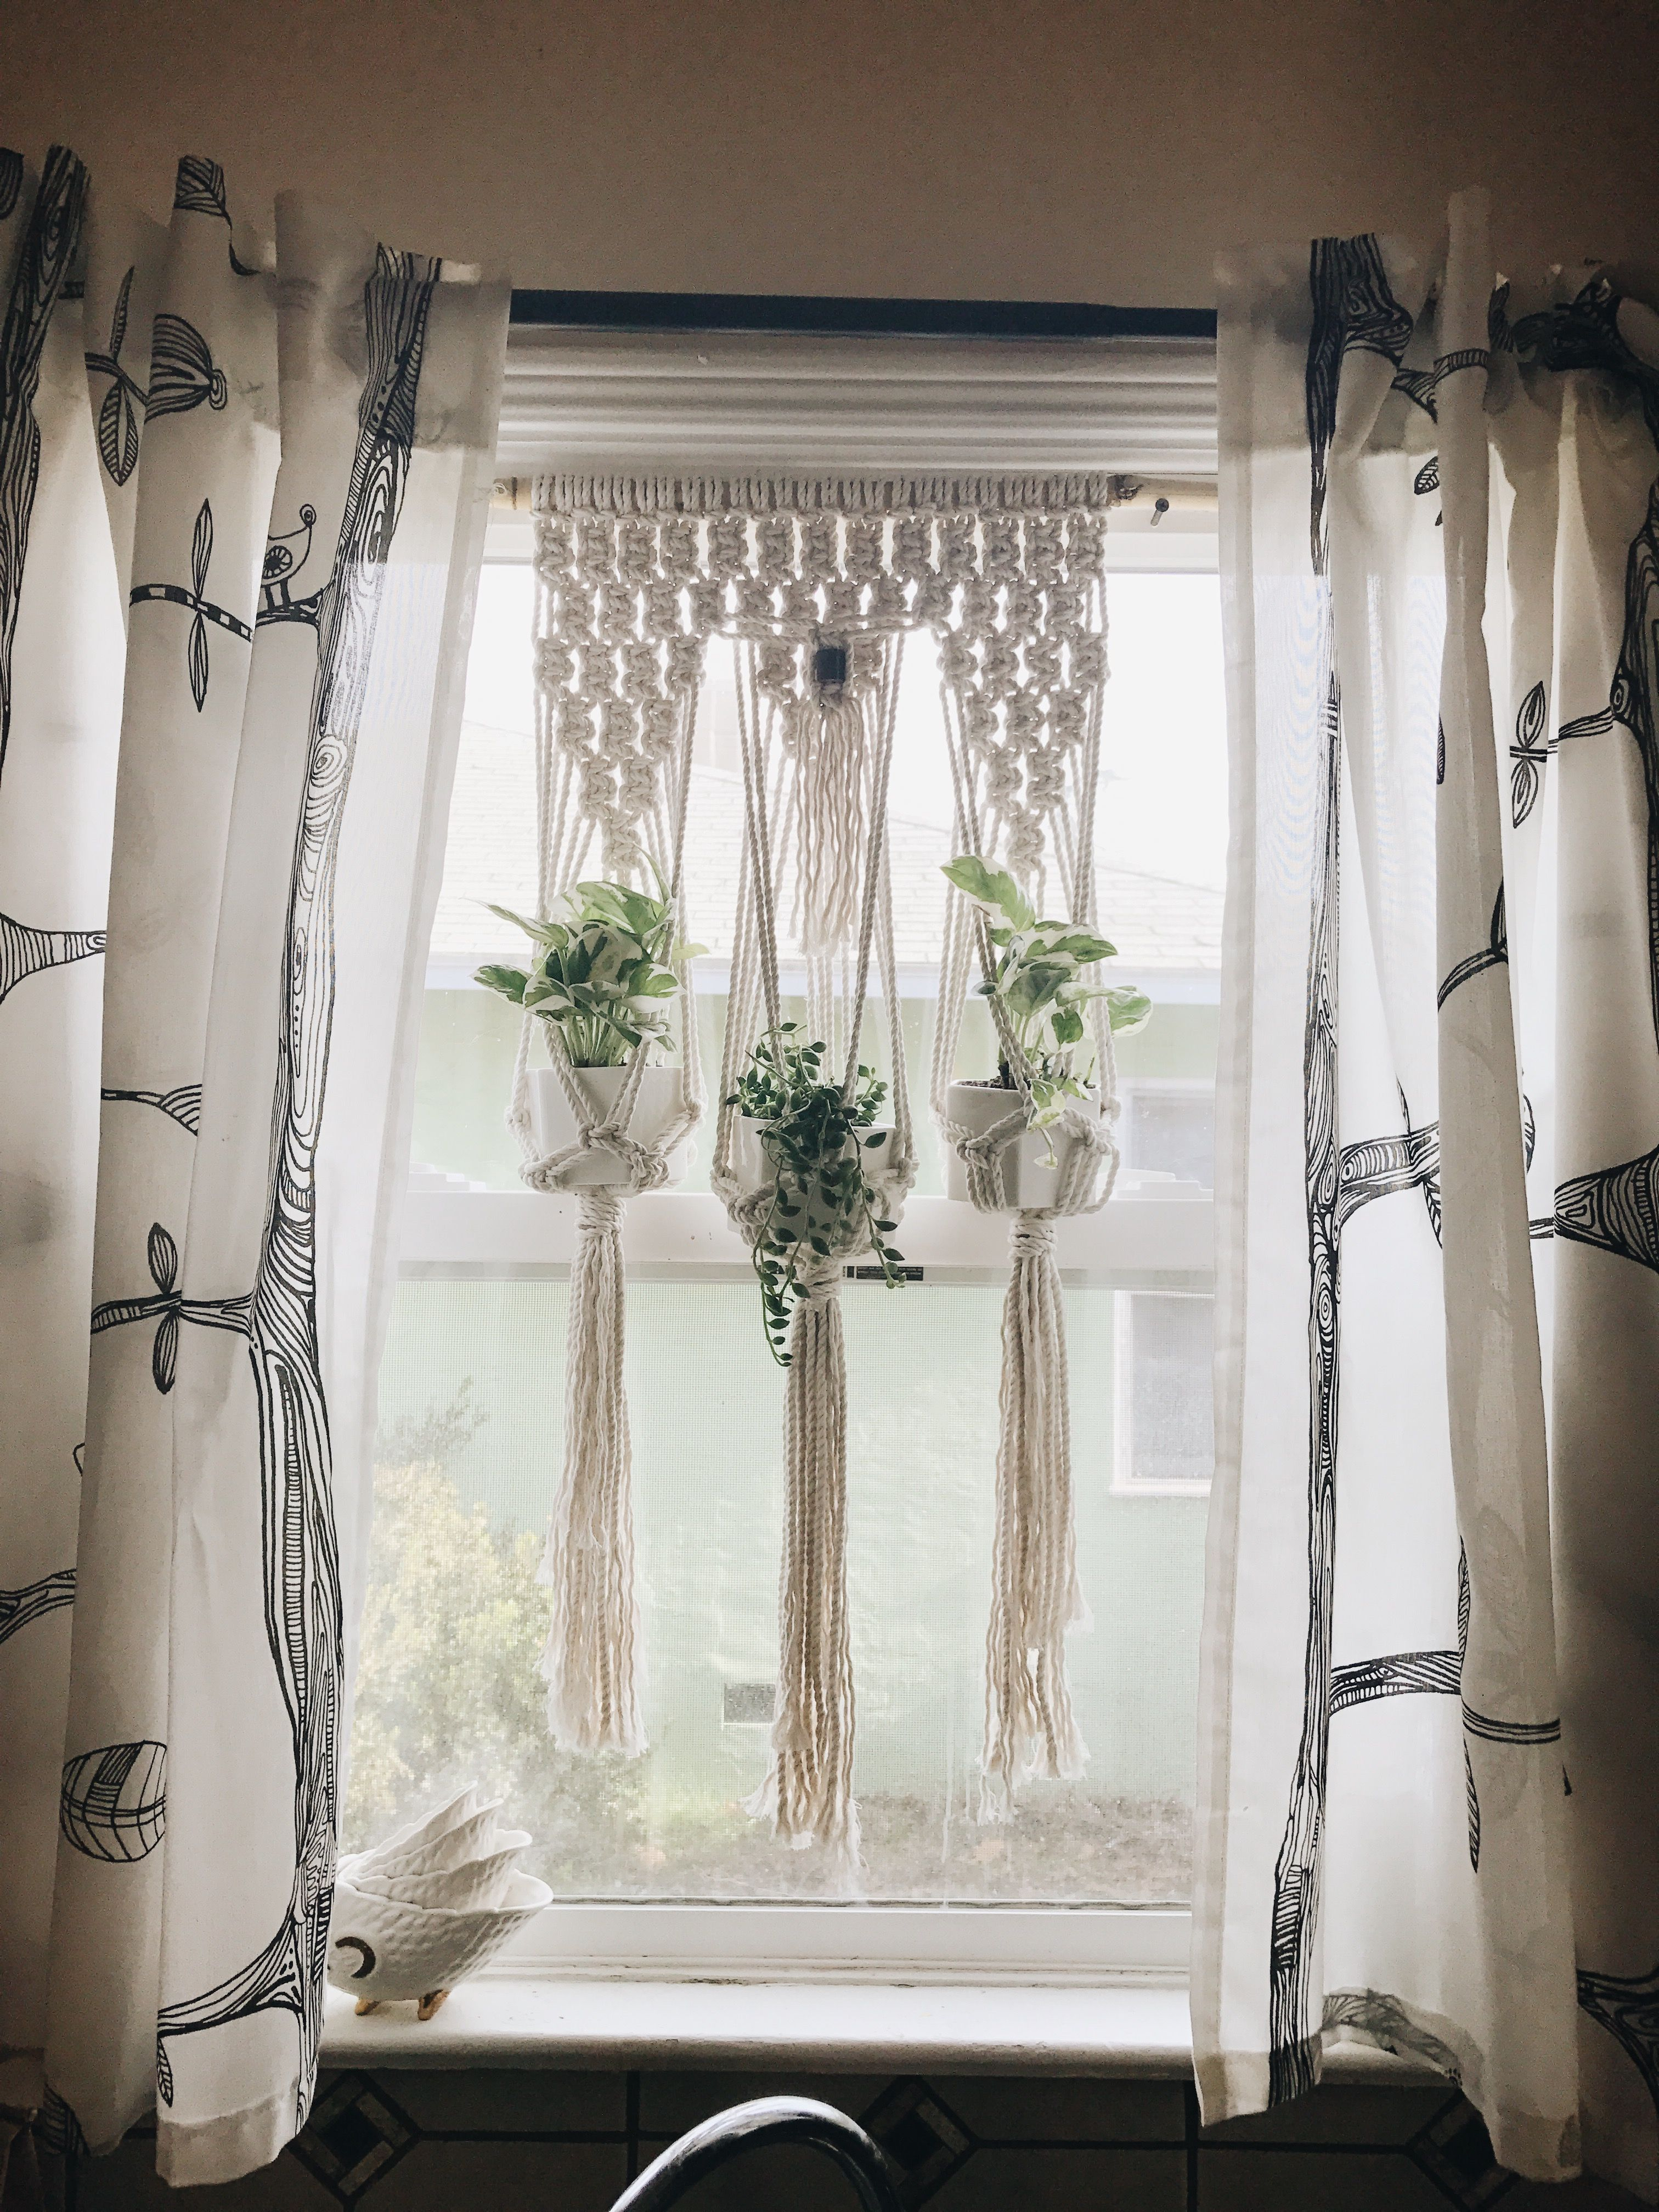 Amazing In Love With This Triple Macrame For Window.